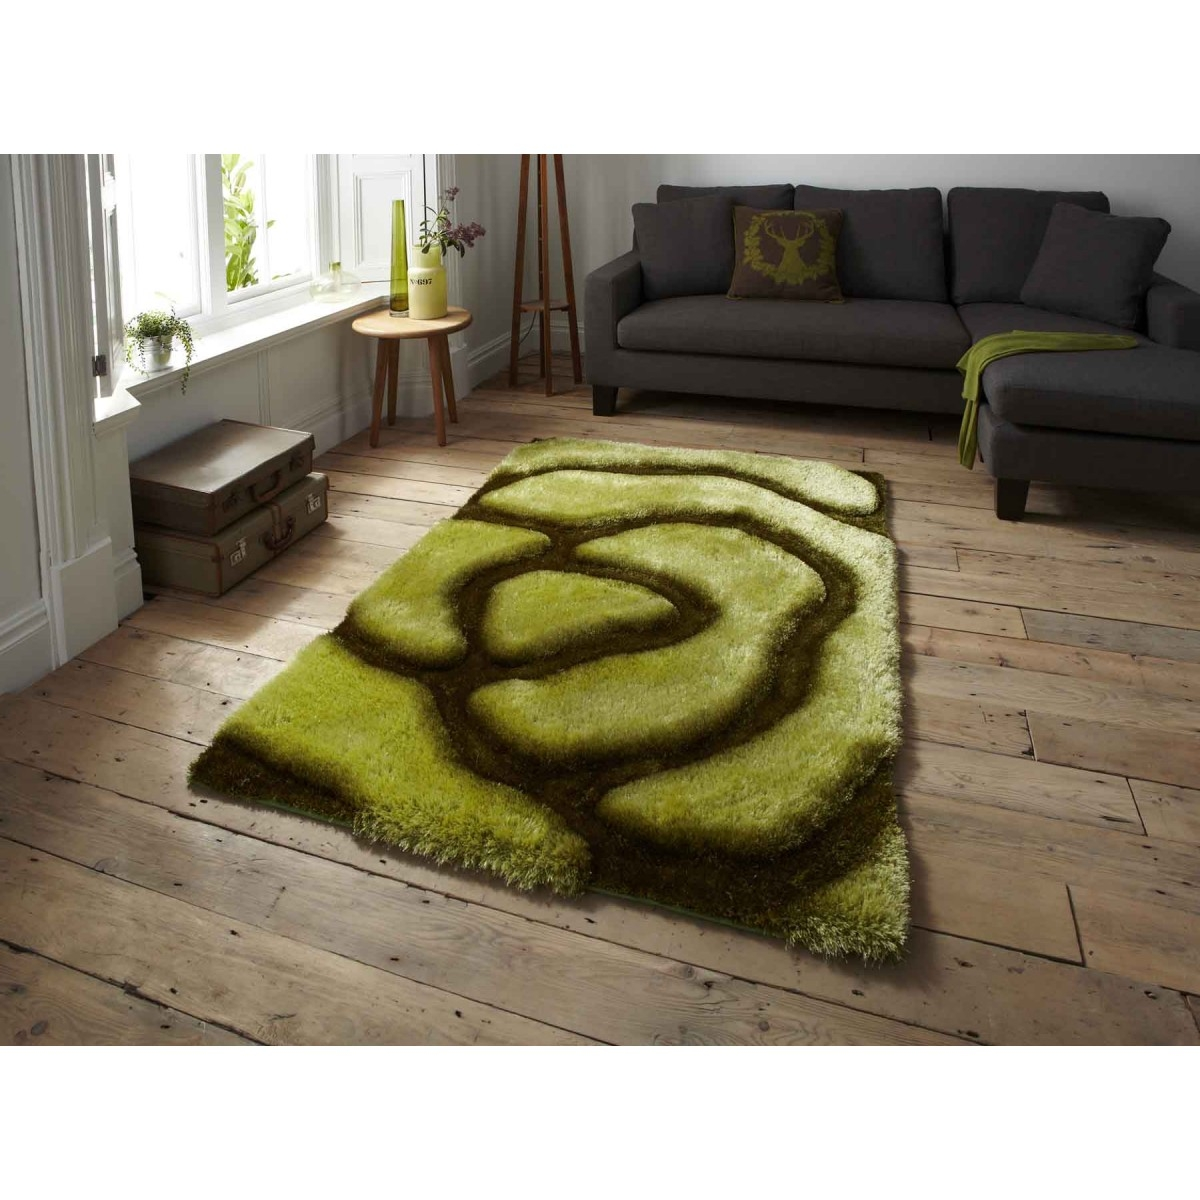 Green Rugs Affordable Olive Green Rugs U Rugs Ideas With Green Throughout Olive Green Rugs (Image 4 of 15)